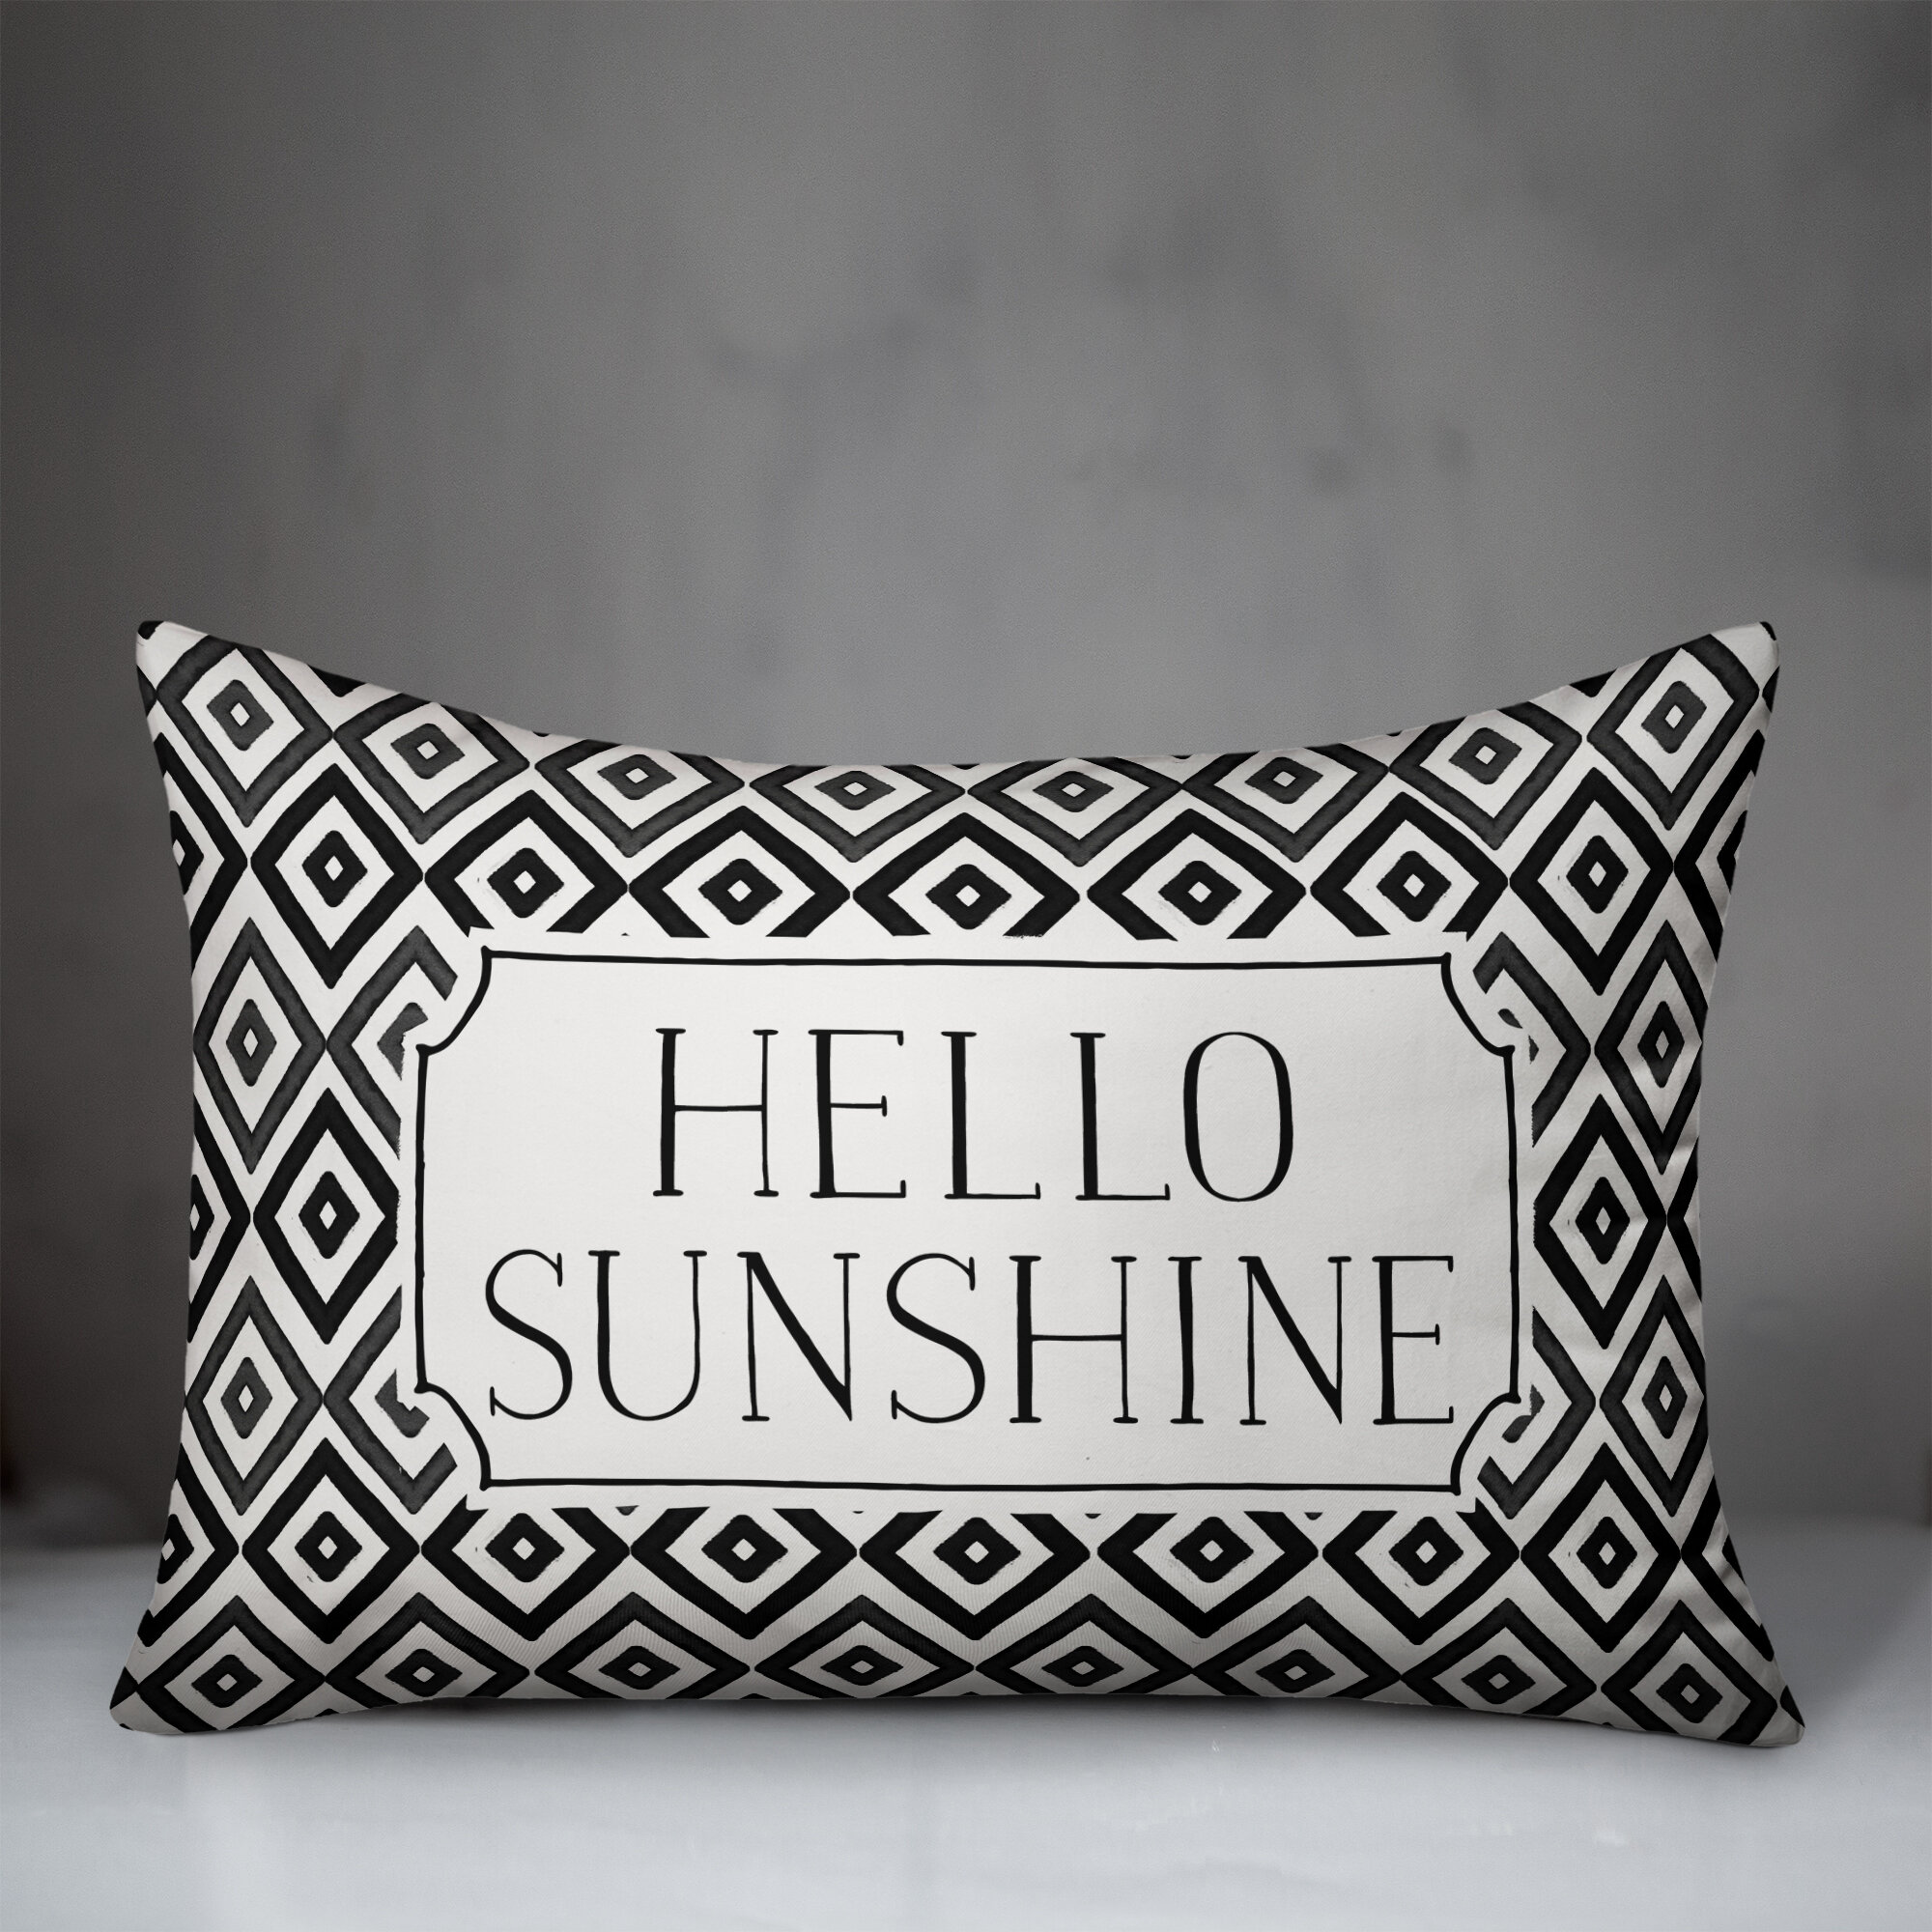 George Oliver Adalyn Hello Sunshine Diamonds Outdoor Rectangular Pillow Cover And Insert Wayfair